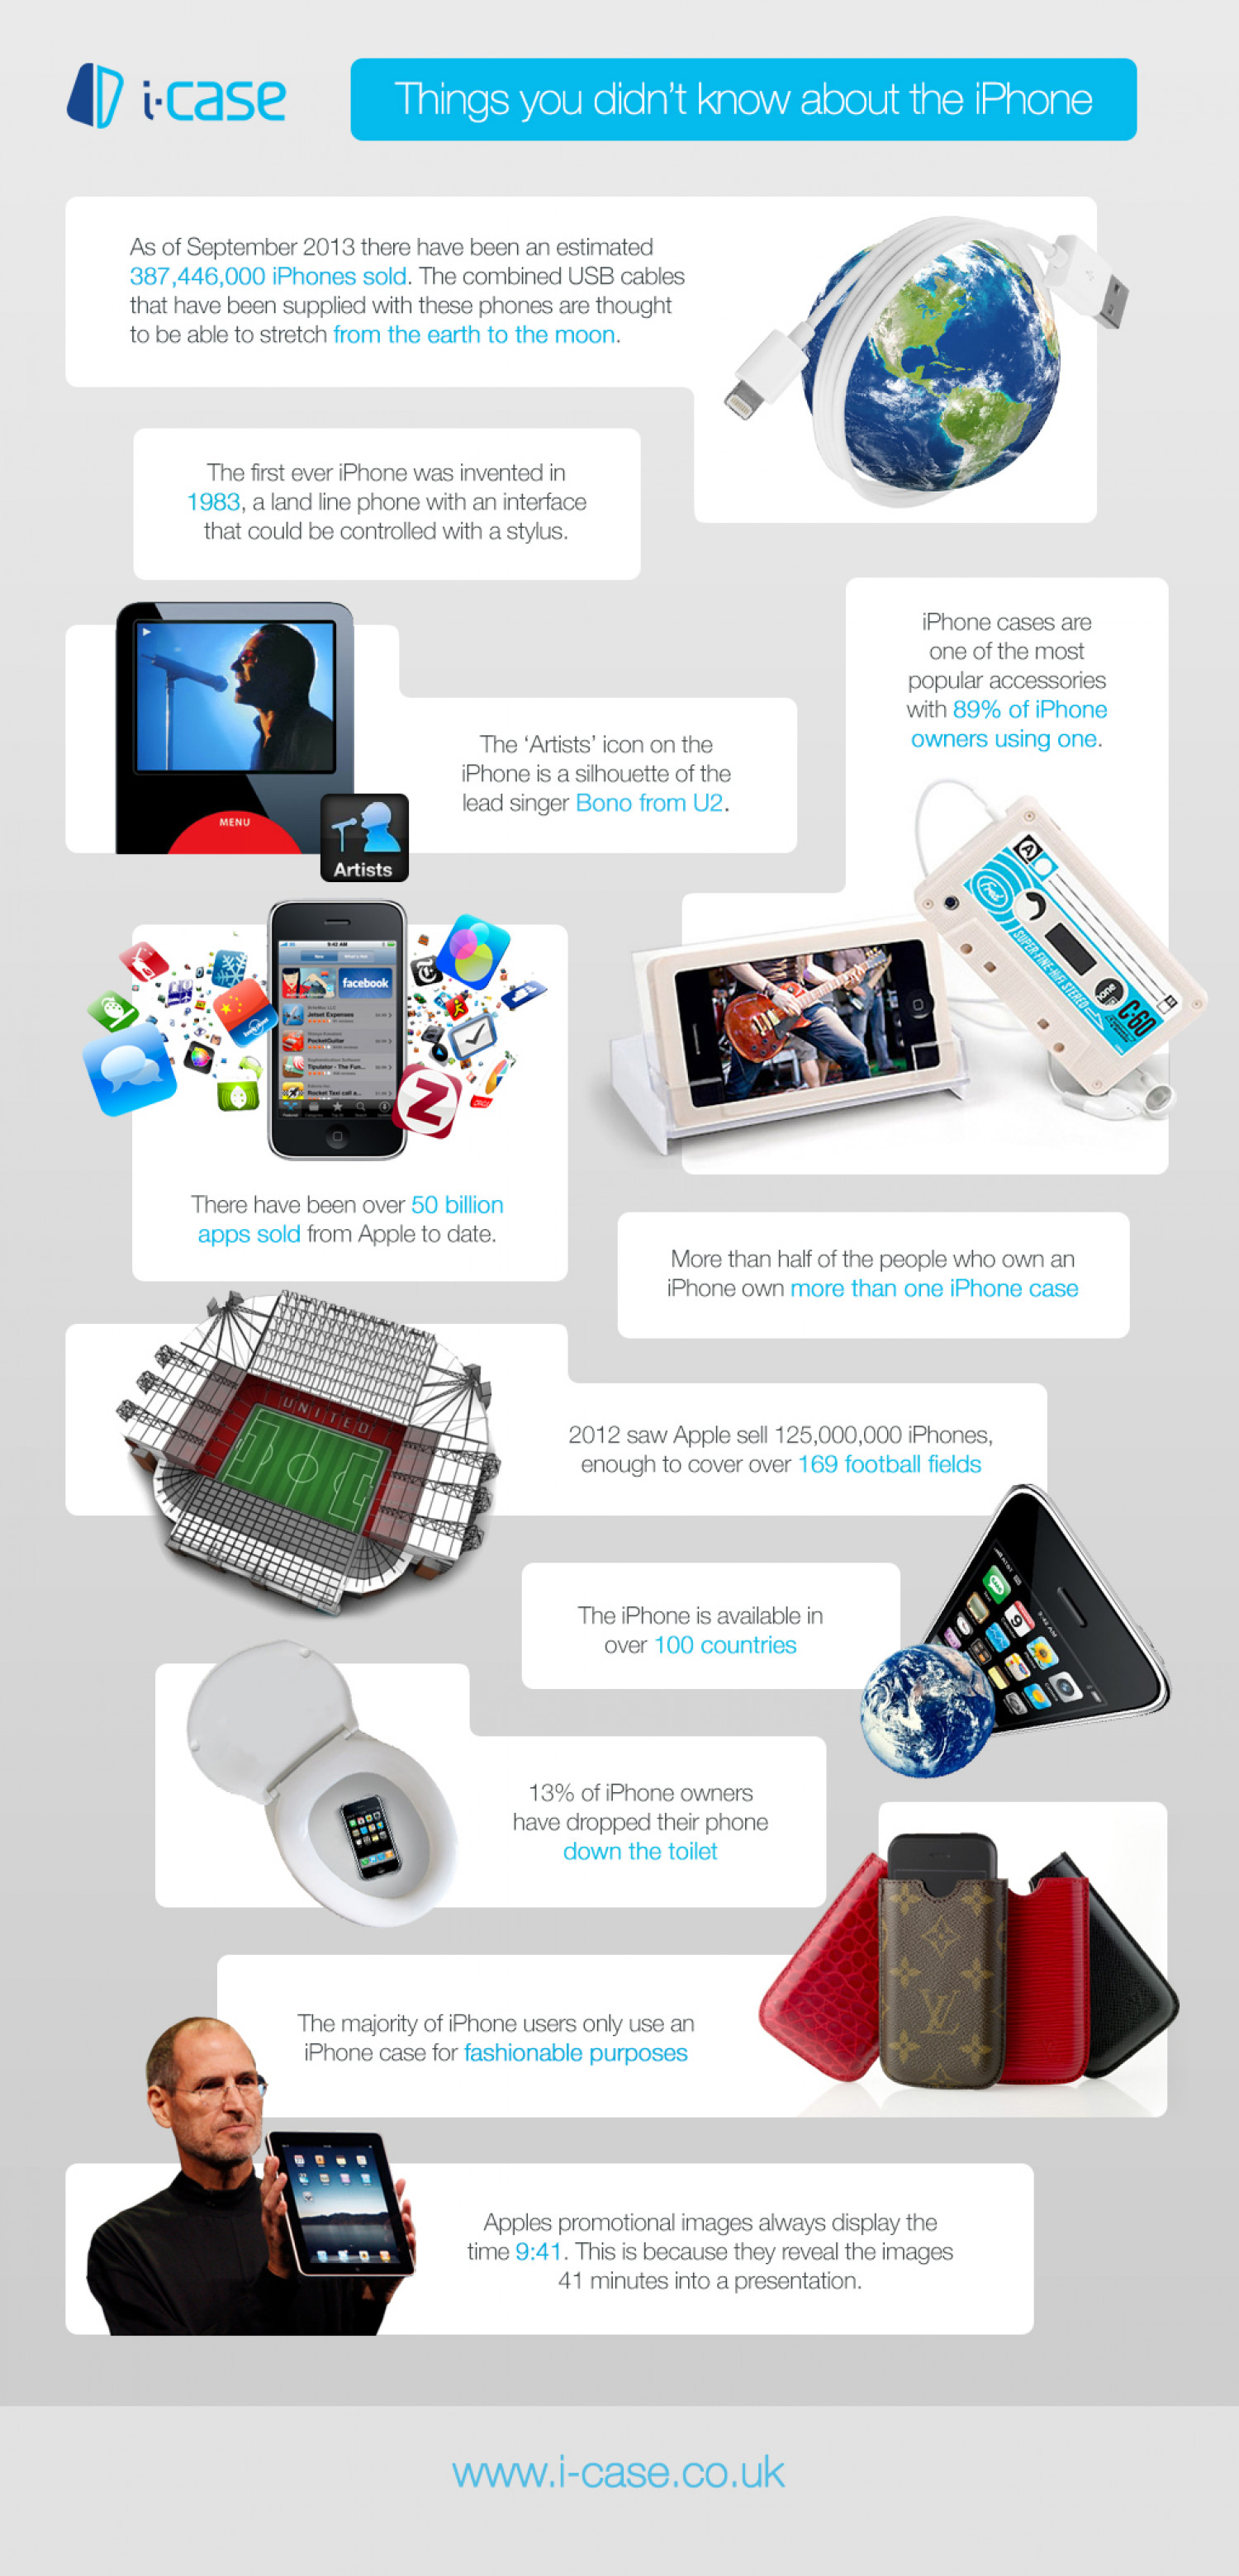 Things You Didn't Know About The iPhone Infographic